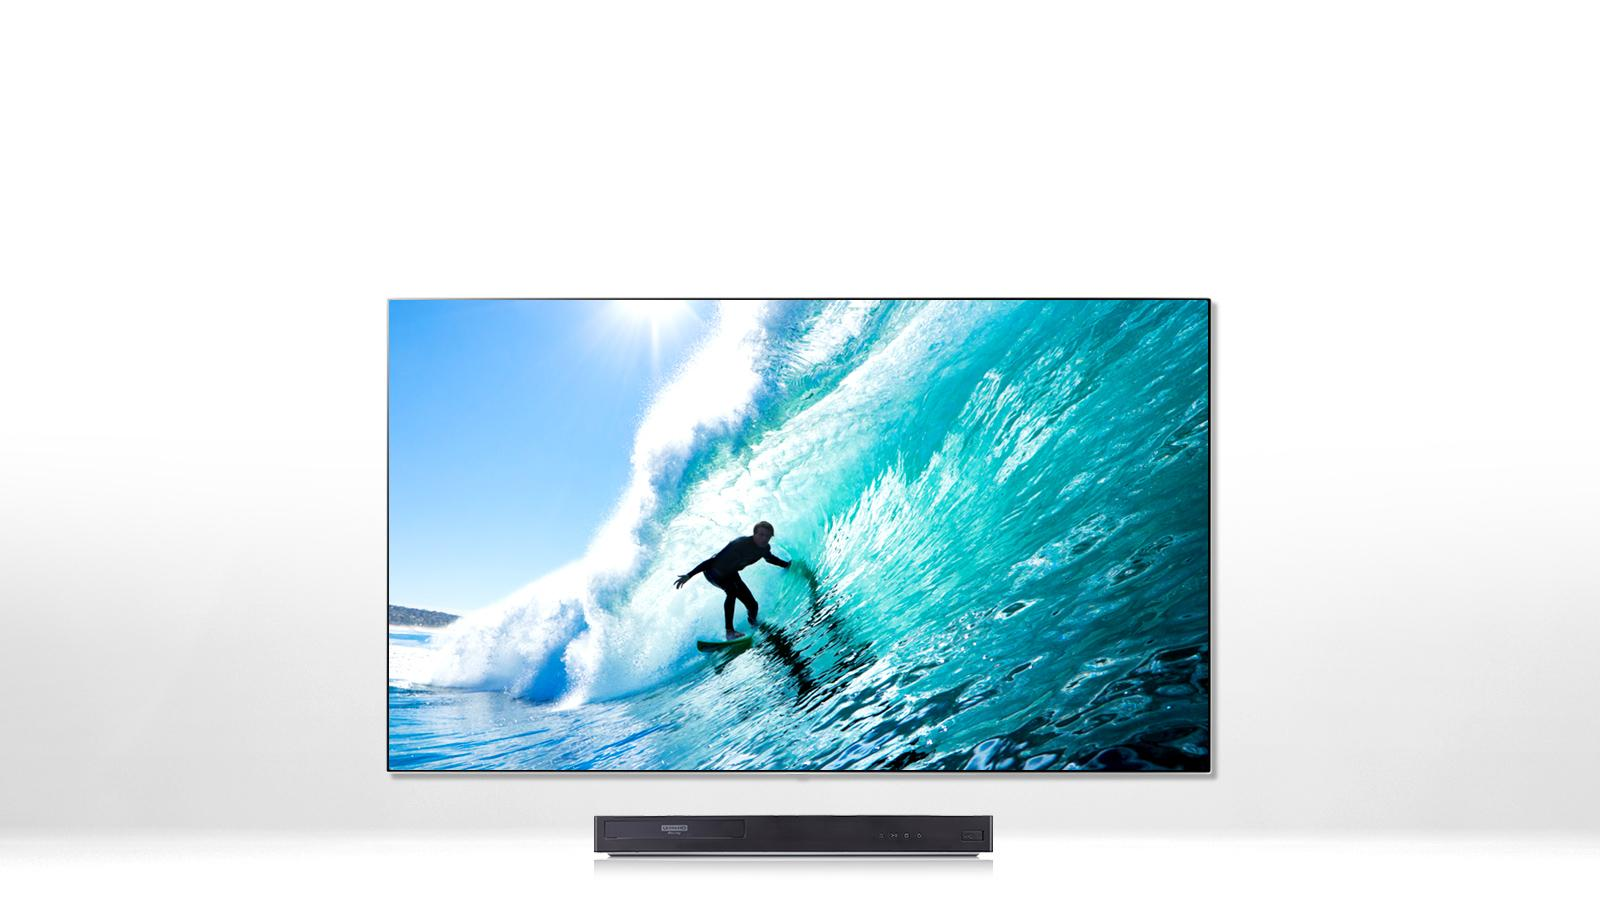 LG UP870: 4K Ultra HD Blu-ray Disc™ Player with HDR Compatibility ...